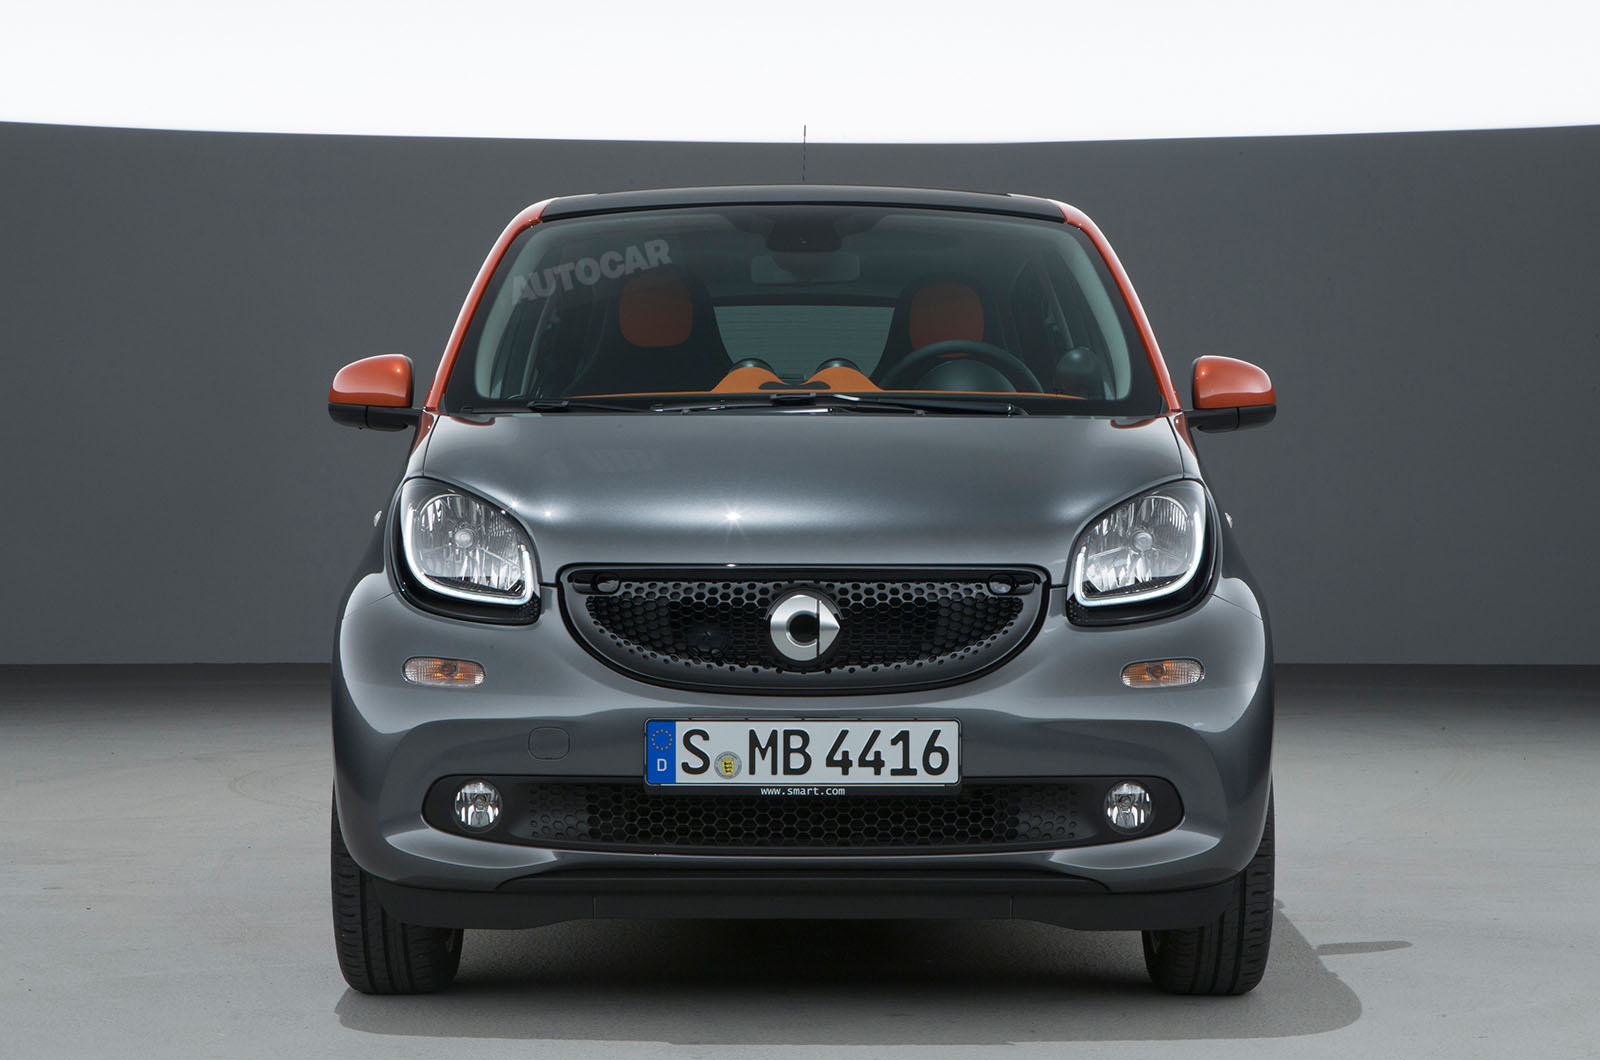 2014 - [Smart] Forfour [W453] - Page 12 Smart-fortwo-forfour-z-t84o27